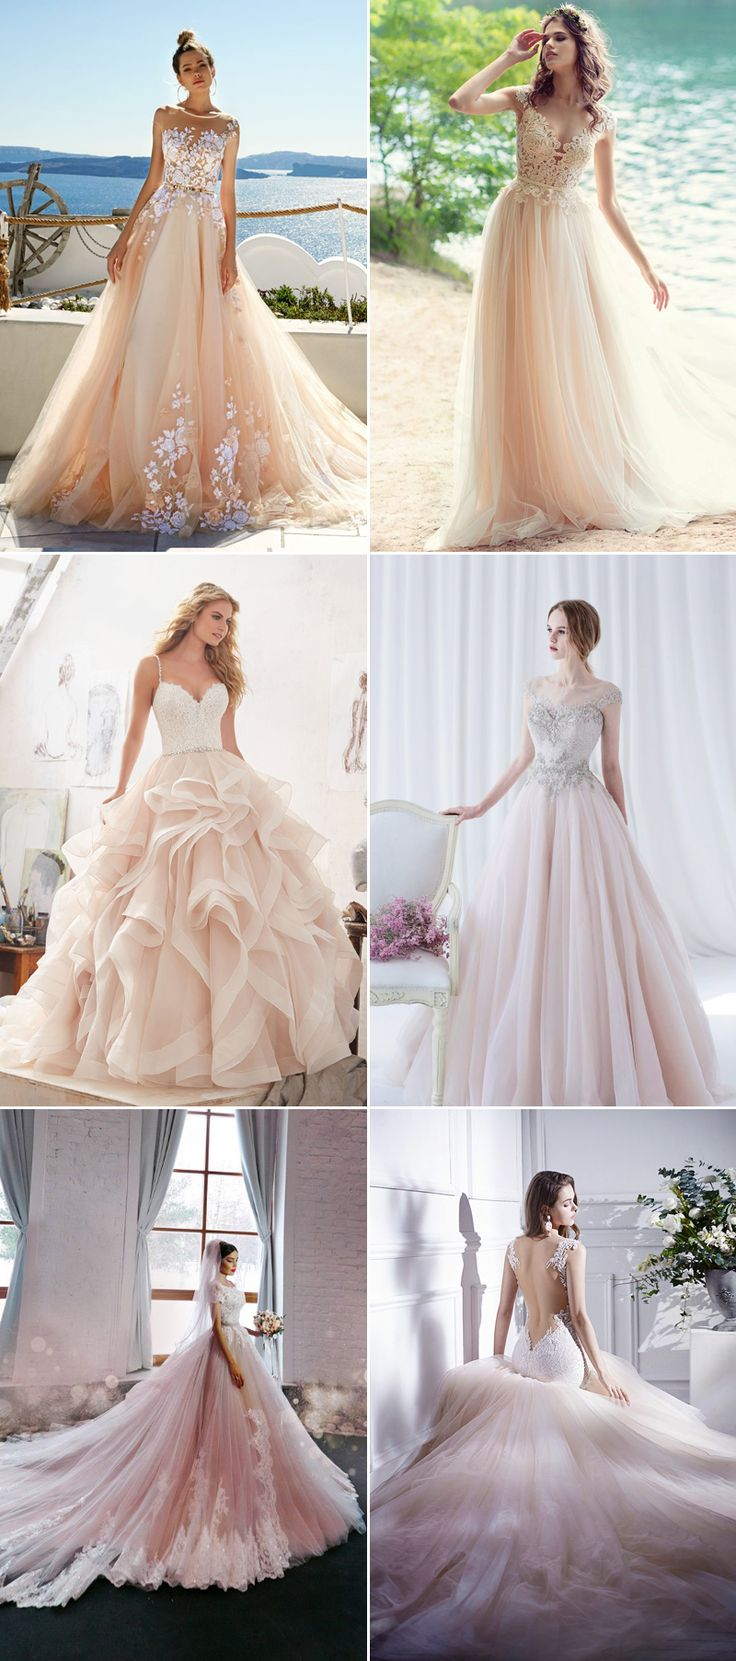 Not ready to commit to a colored wedding dress, but want to stand out in an ivory sea? Consider adding just a touch of pink to your dress! A dash of romance is found in our collection of lovely gowns below, presenting different ways to personify femininity with a trace of playfulness. Read on to …